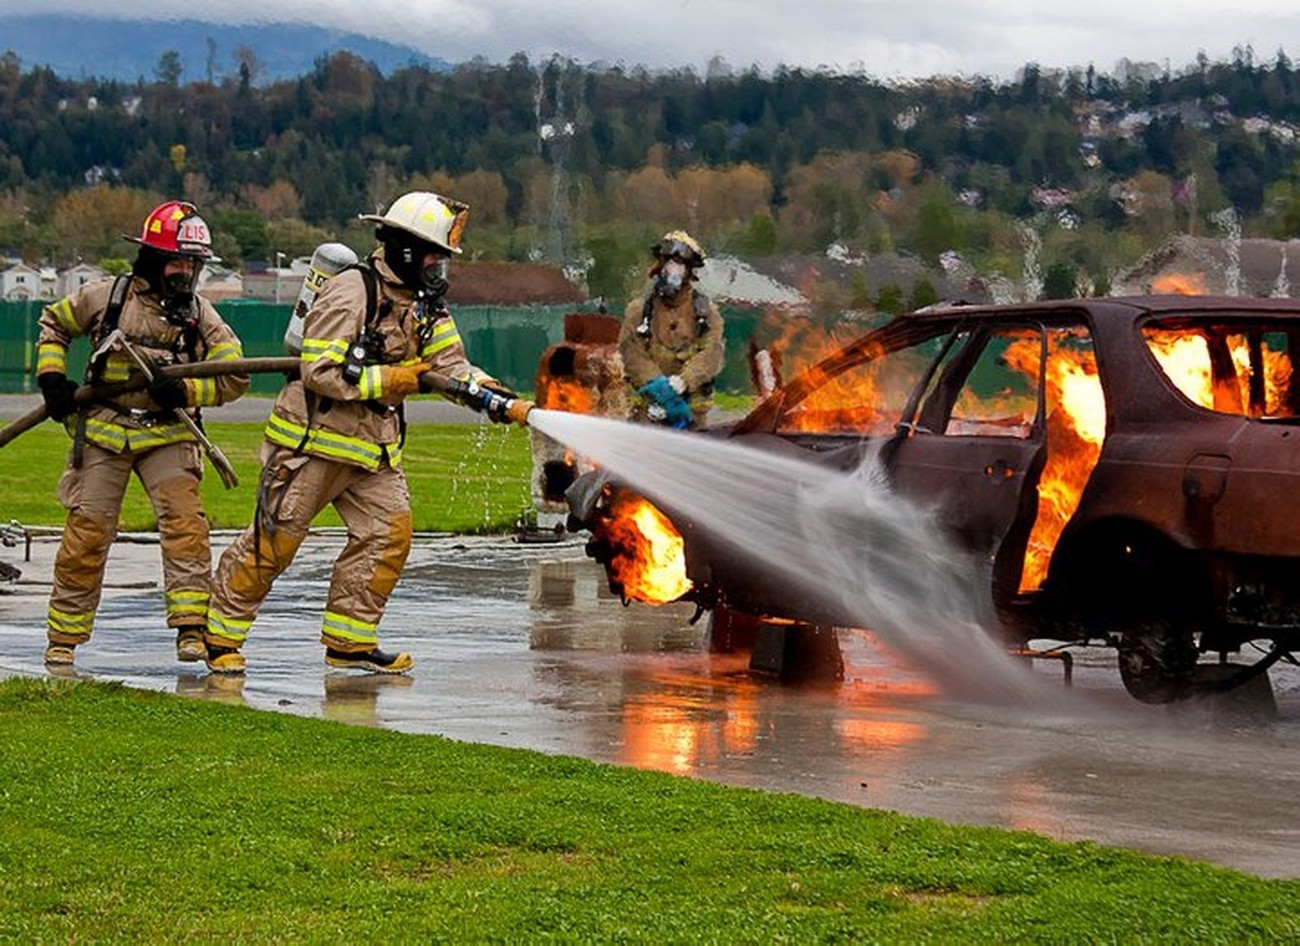 Live fire training on the car fire prop at Skagit County Fire Training Academy